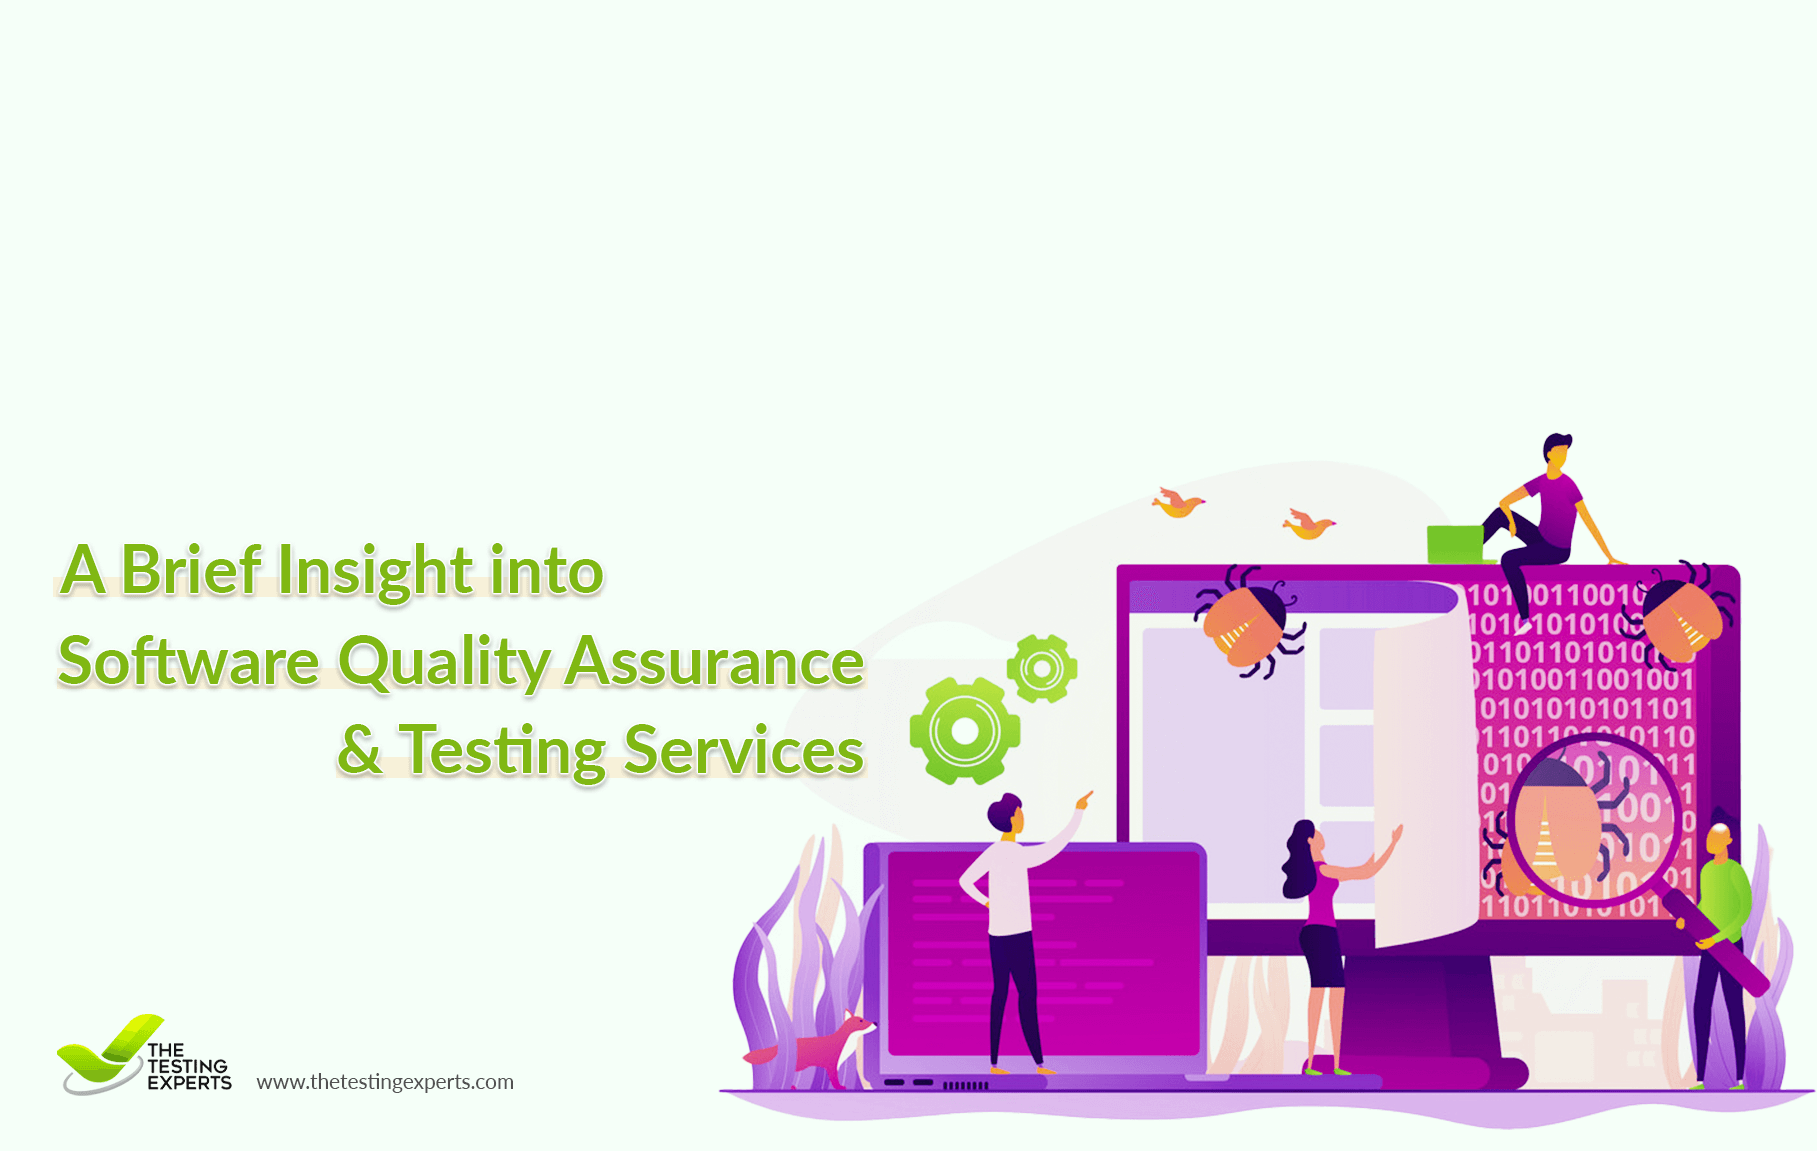 A Brief Insight into Software Quality Assurance & Testing Services